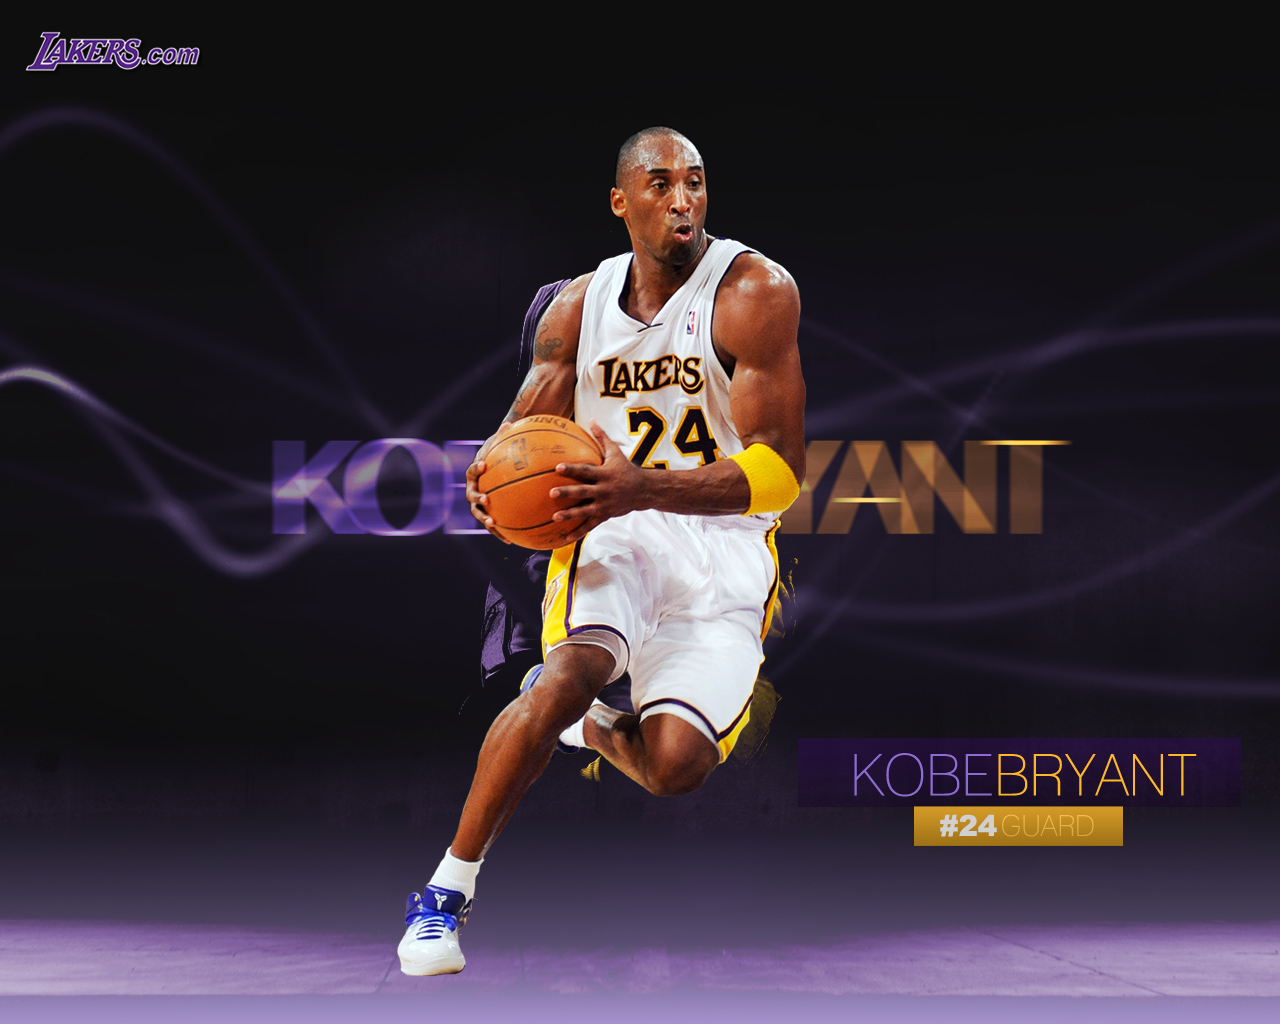 Outstanding Kobe Bryant Shoes Nike Wallpaper At Basketball Wallpapers On Imageion Awesome 1280x1024px